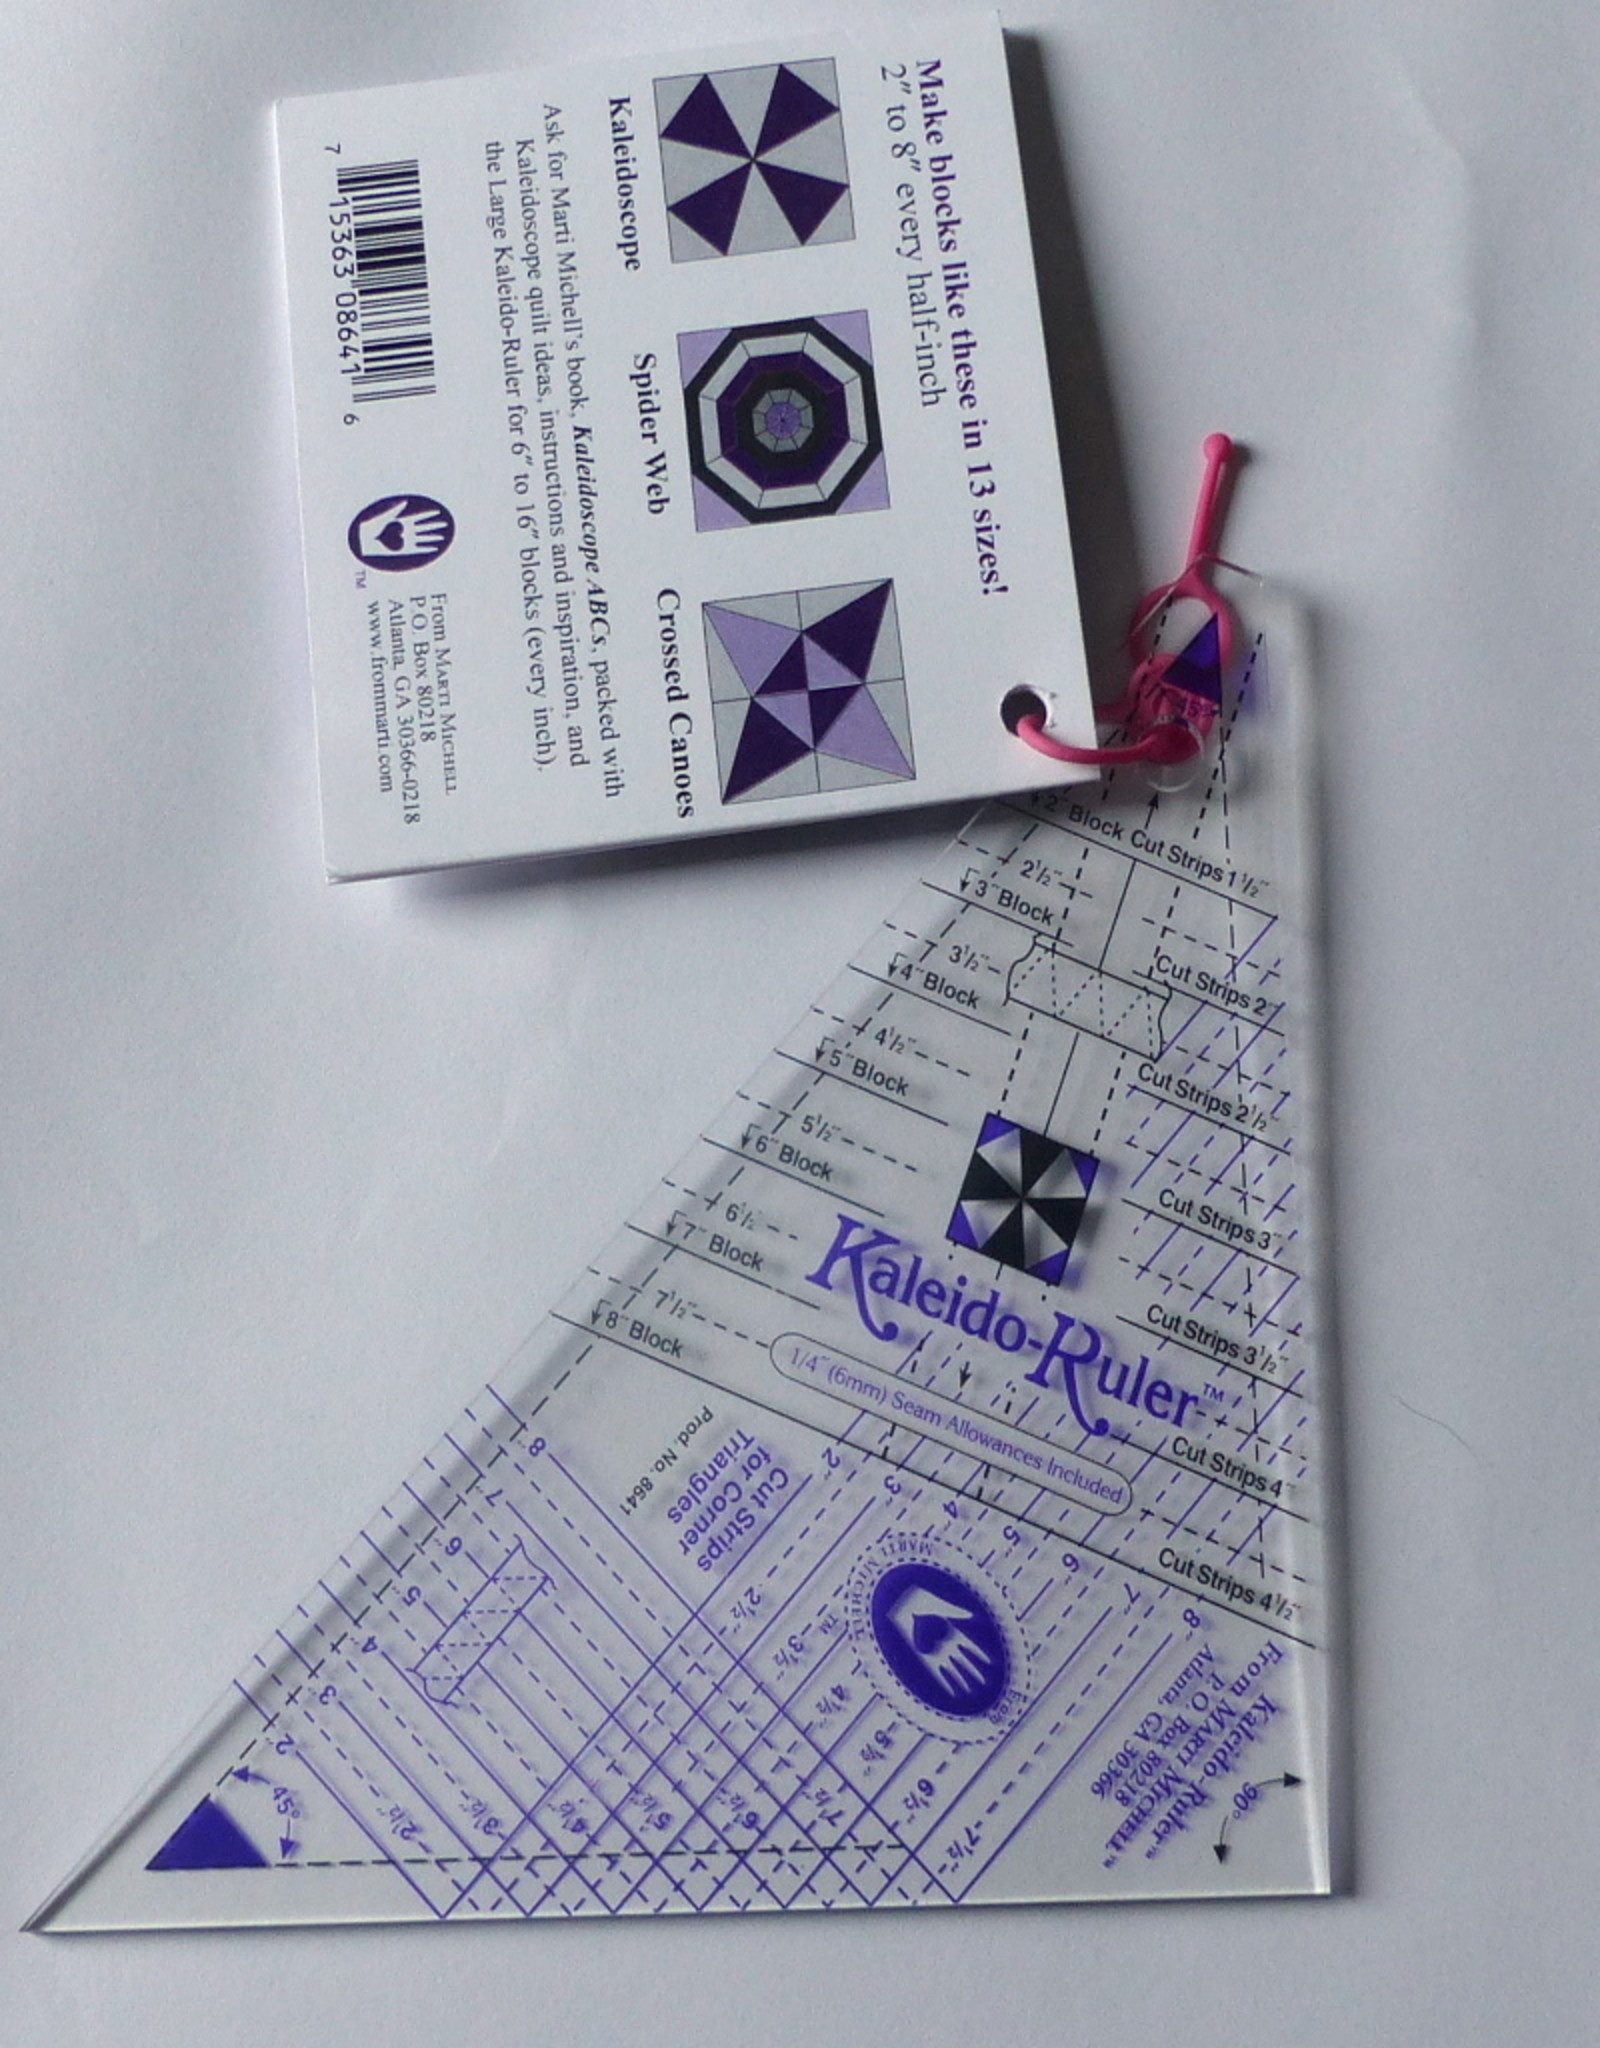 Marti Michell Small Kaleido Ruler